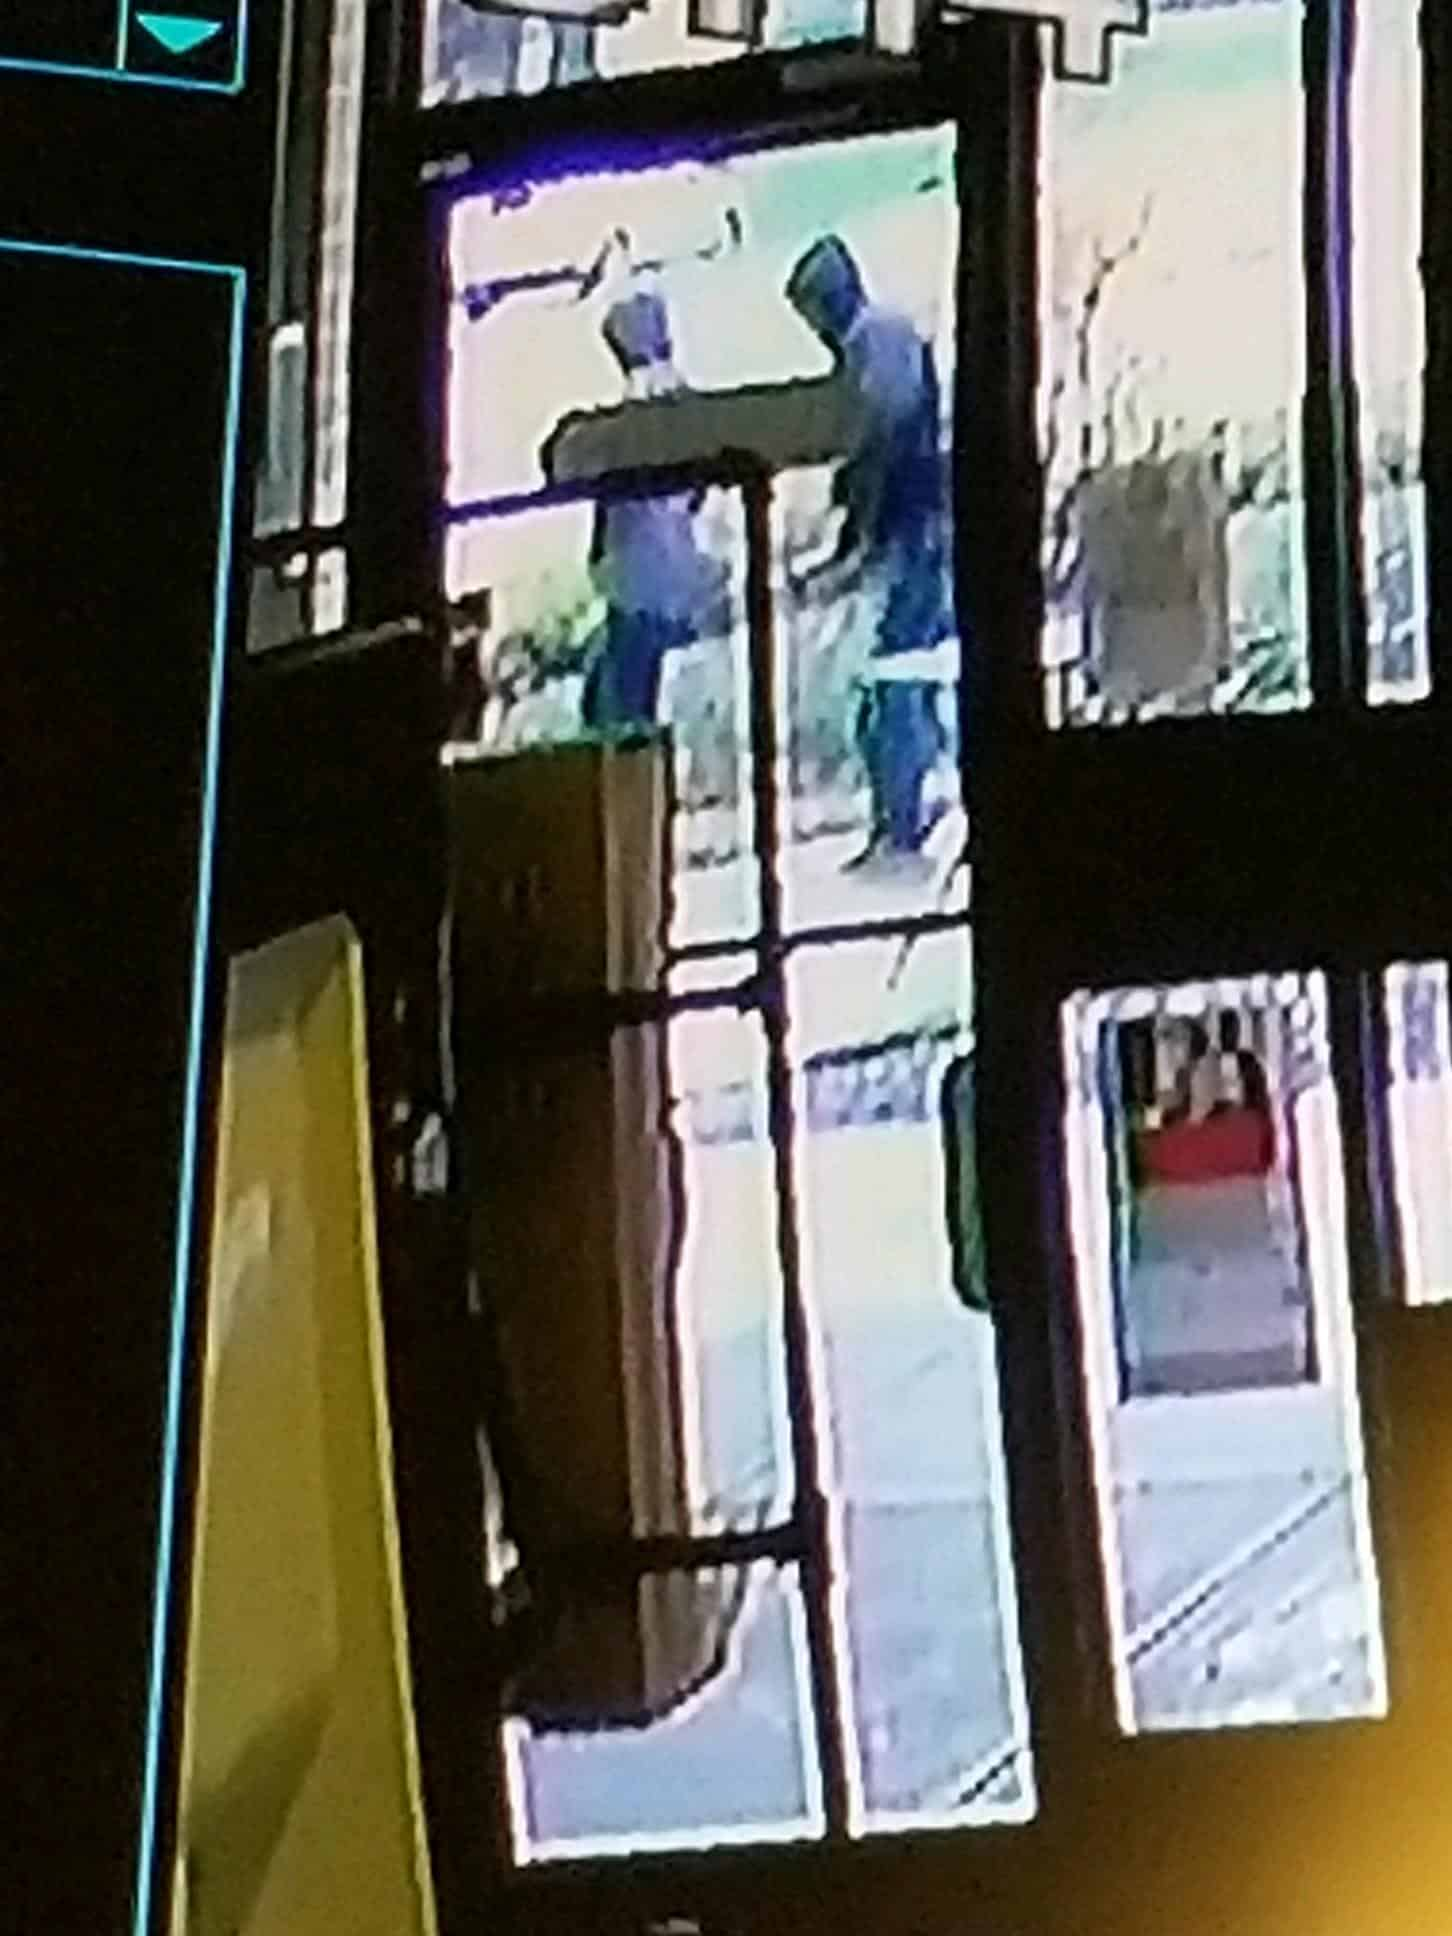 Surveillance footage of the attempted armed robbery (suspect on the right)